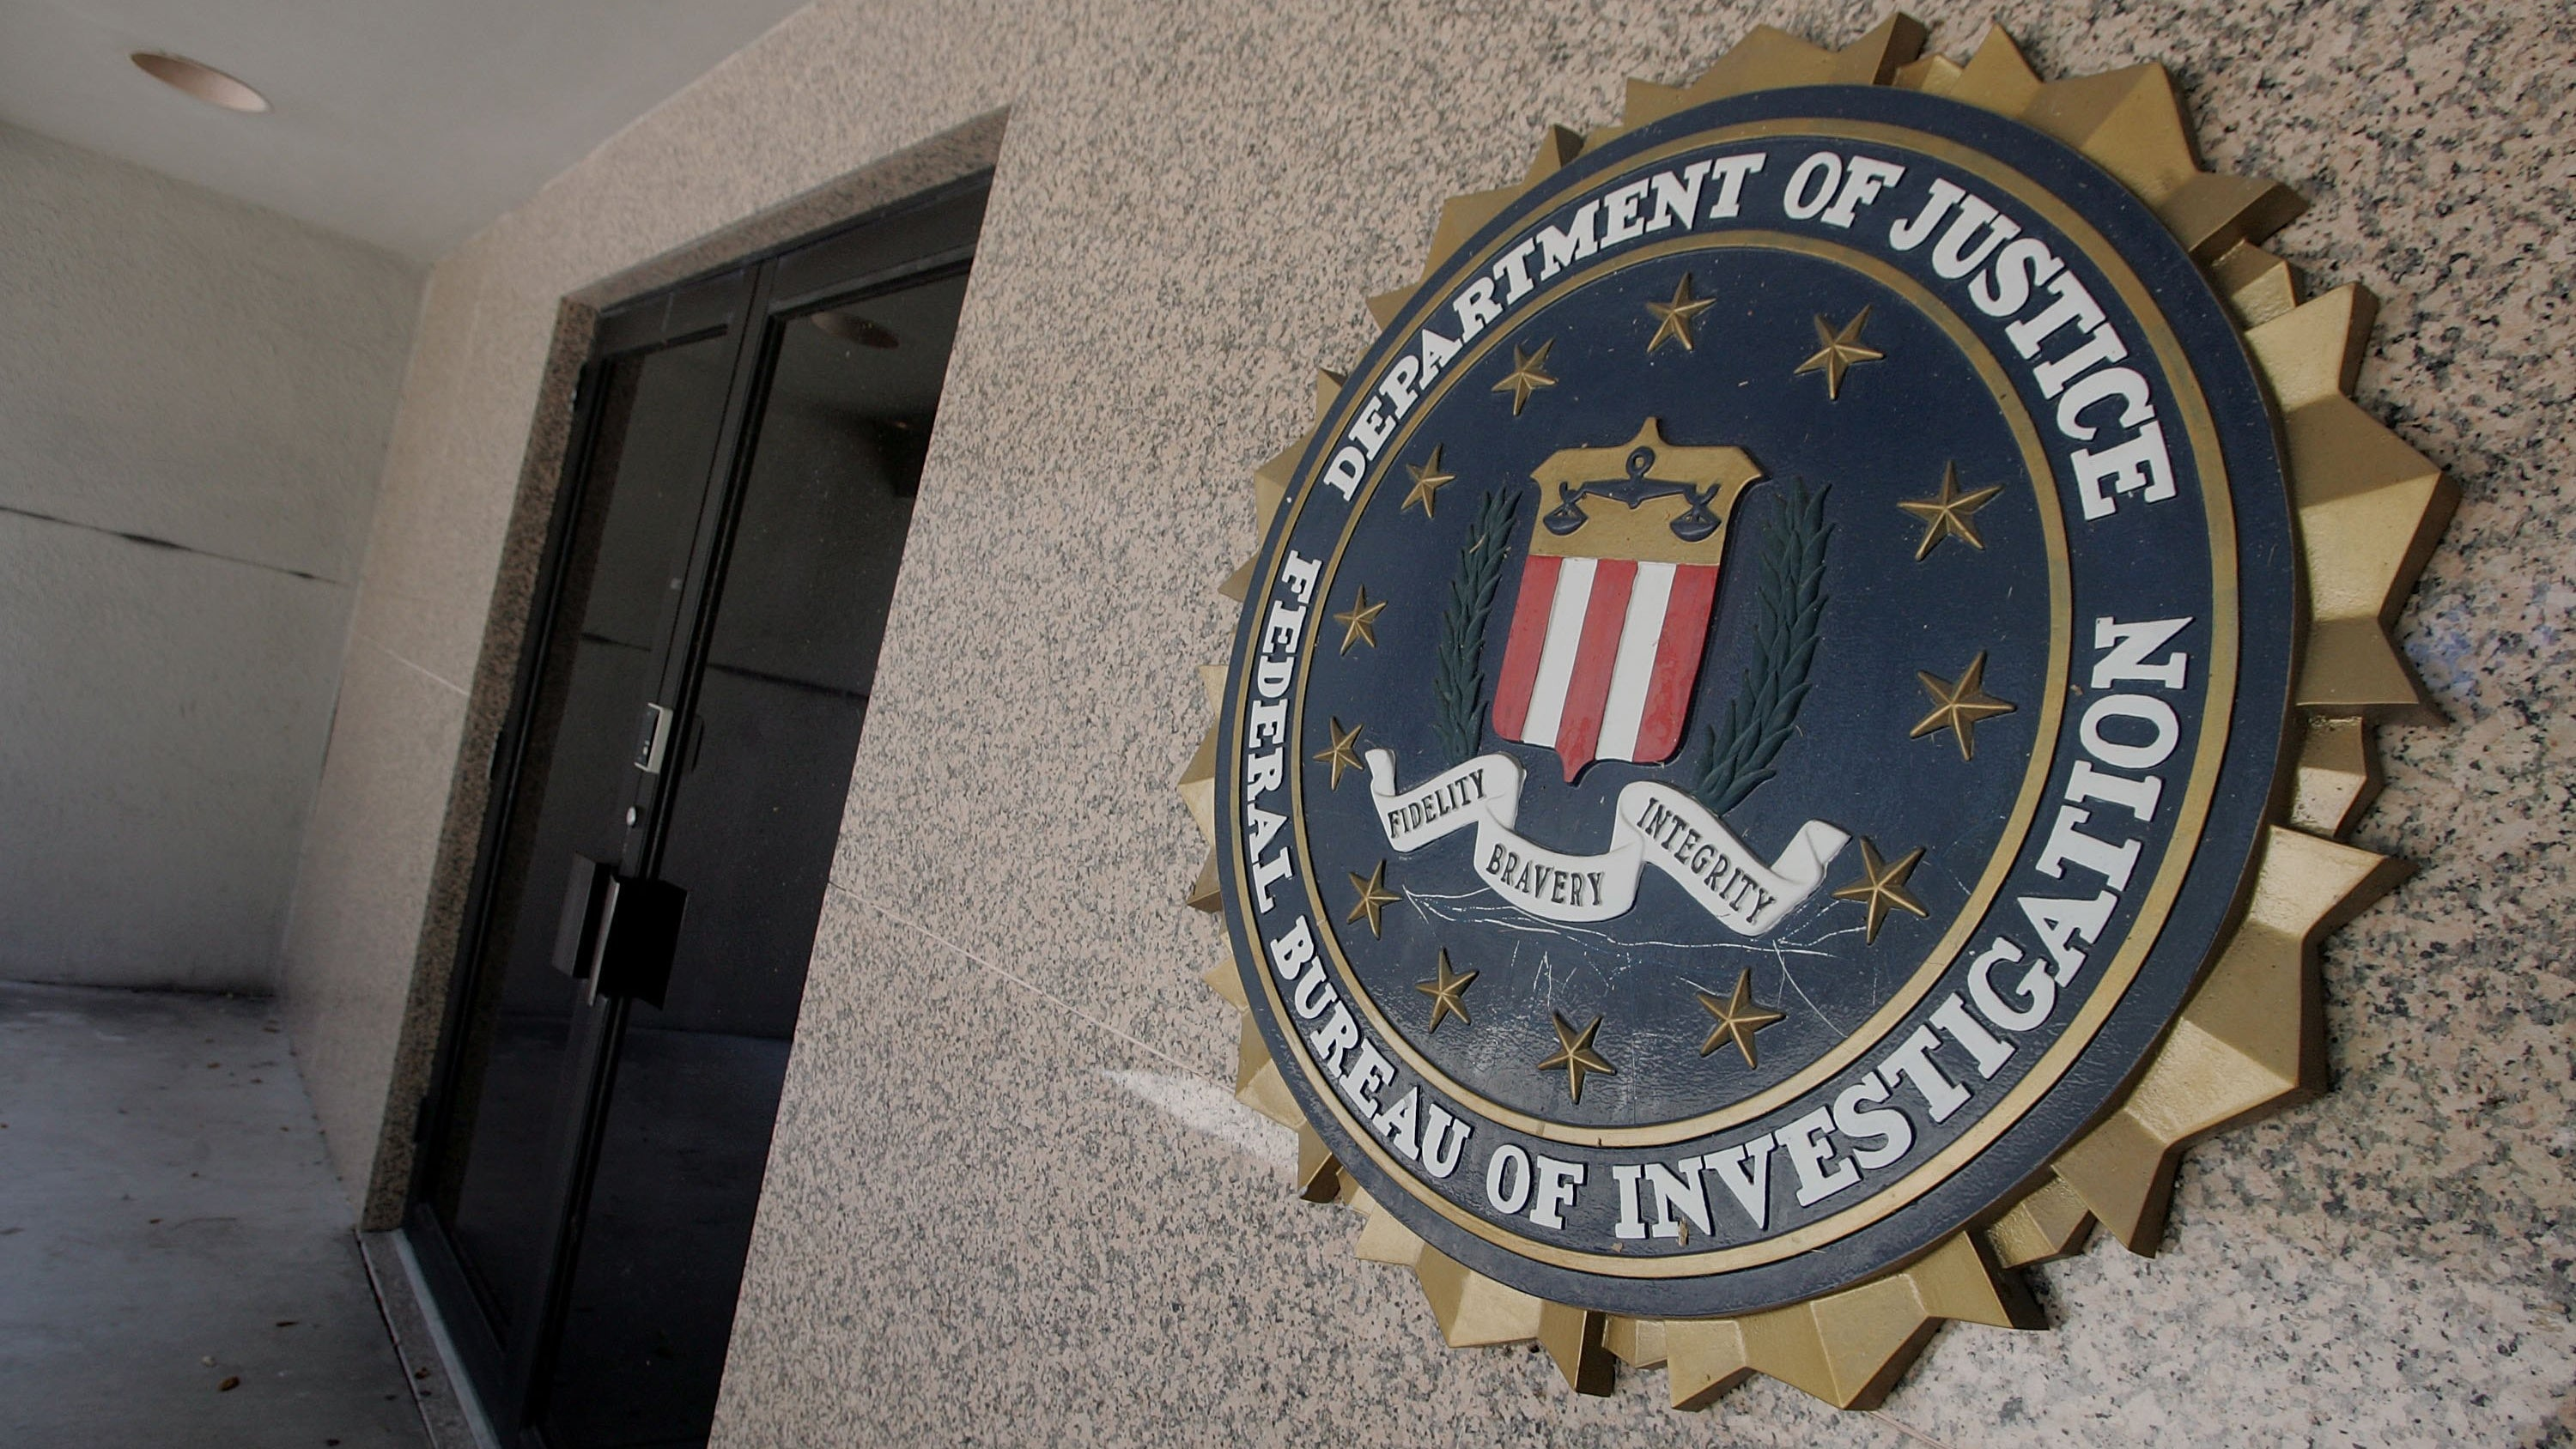 Child porn case dropped to prevent Federal Bureau of Investigation disclosure